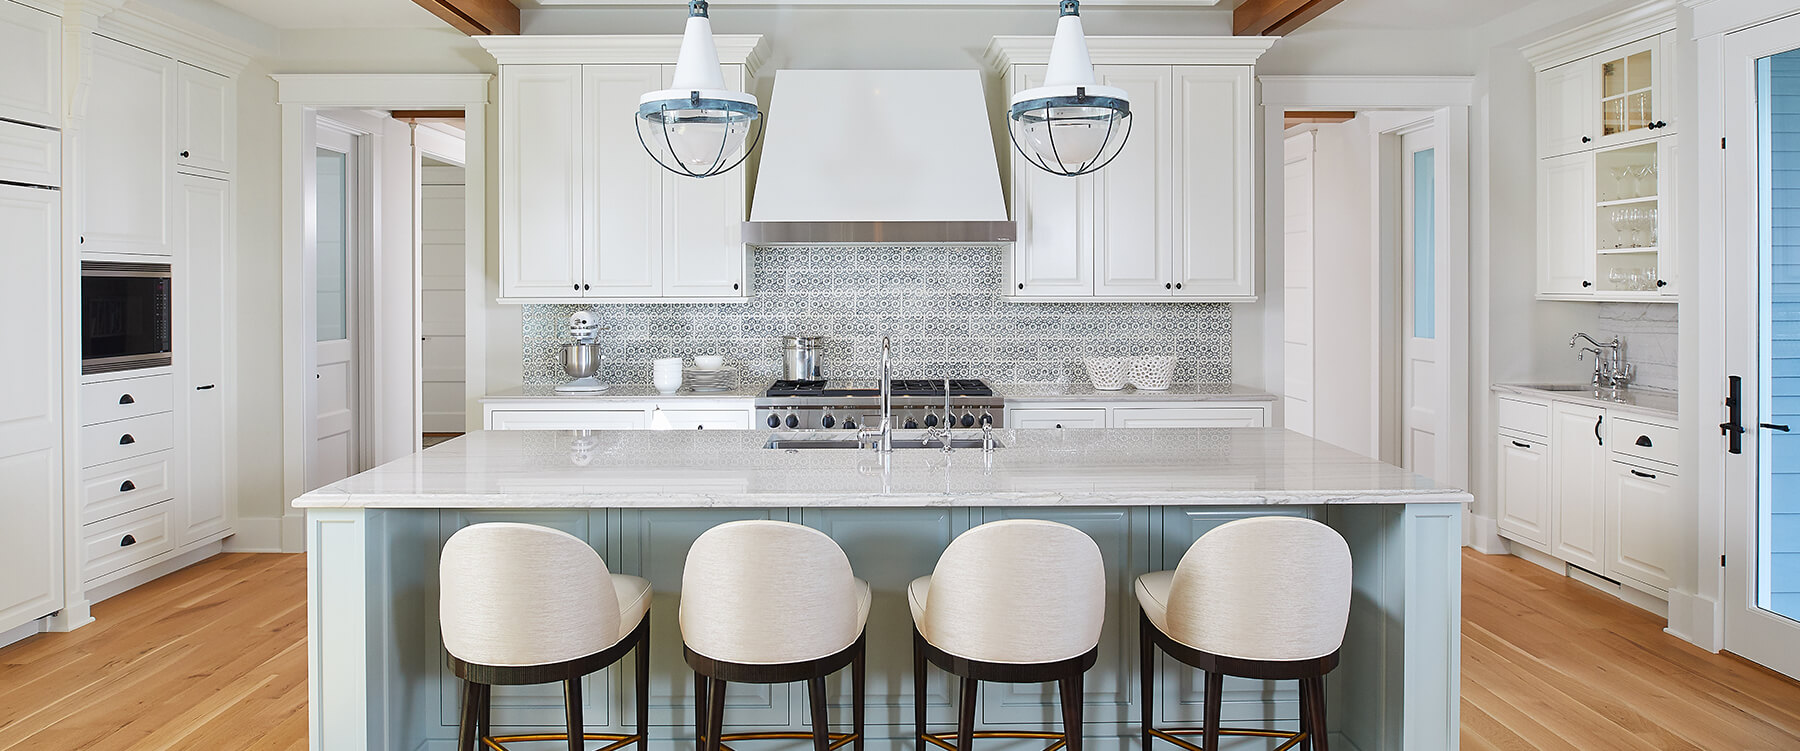 Lakefront cottage kitchen counter